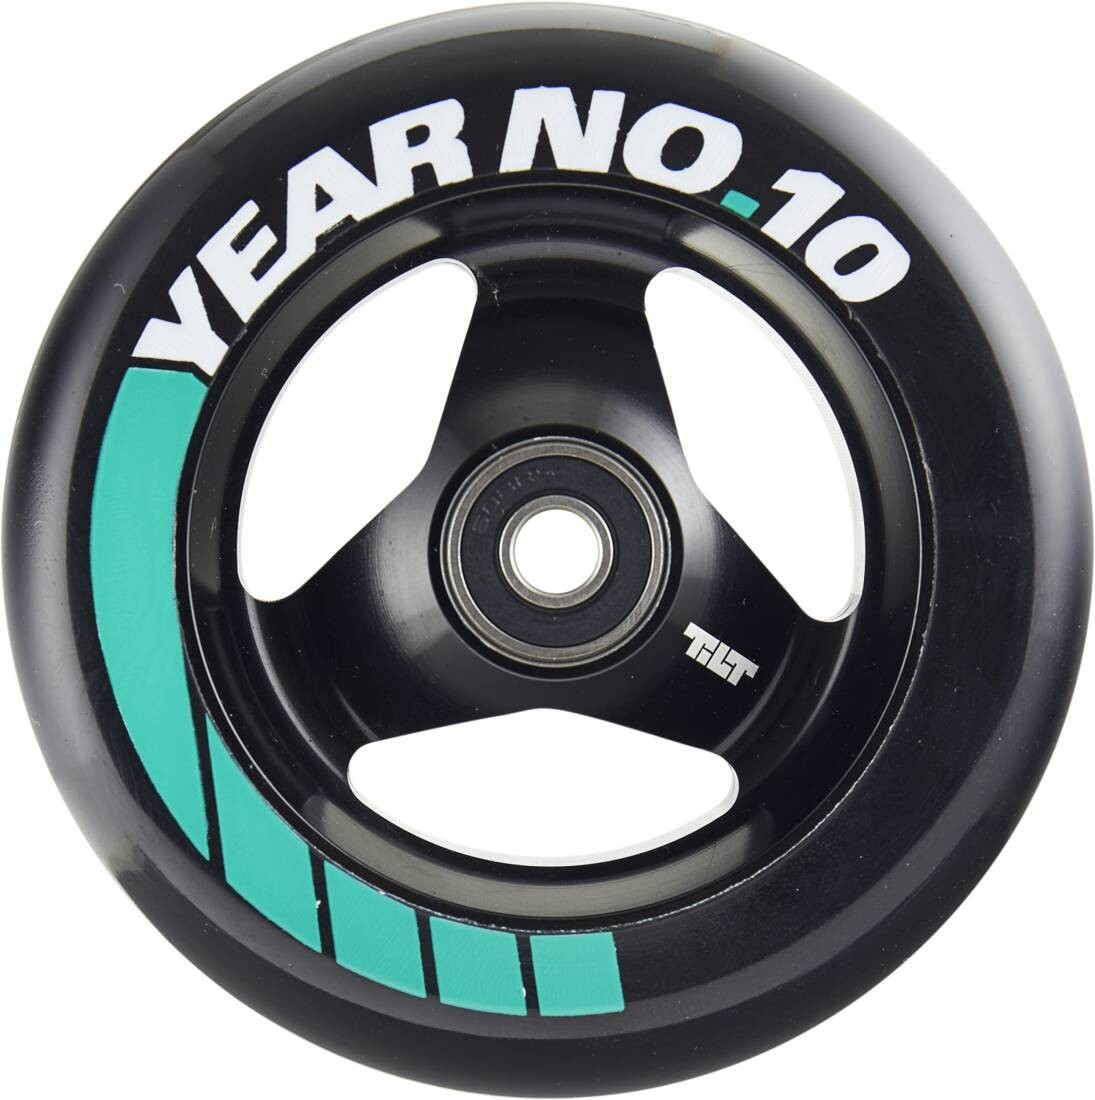 Tilt Ten Year 110 Wheel